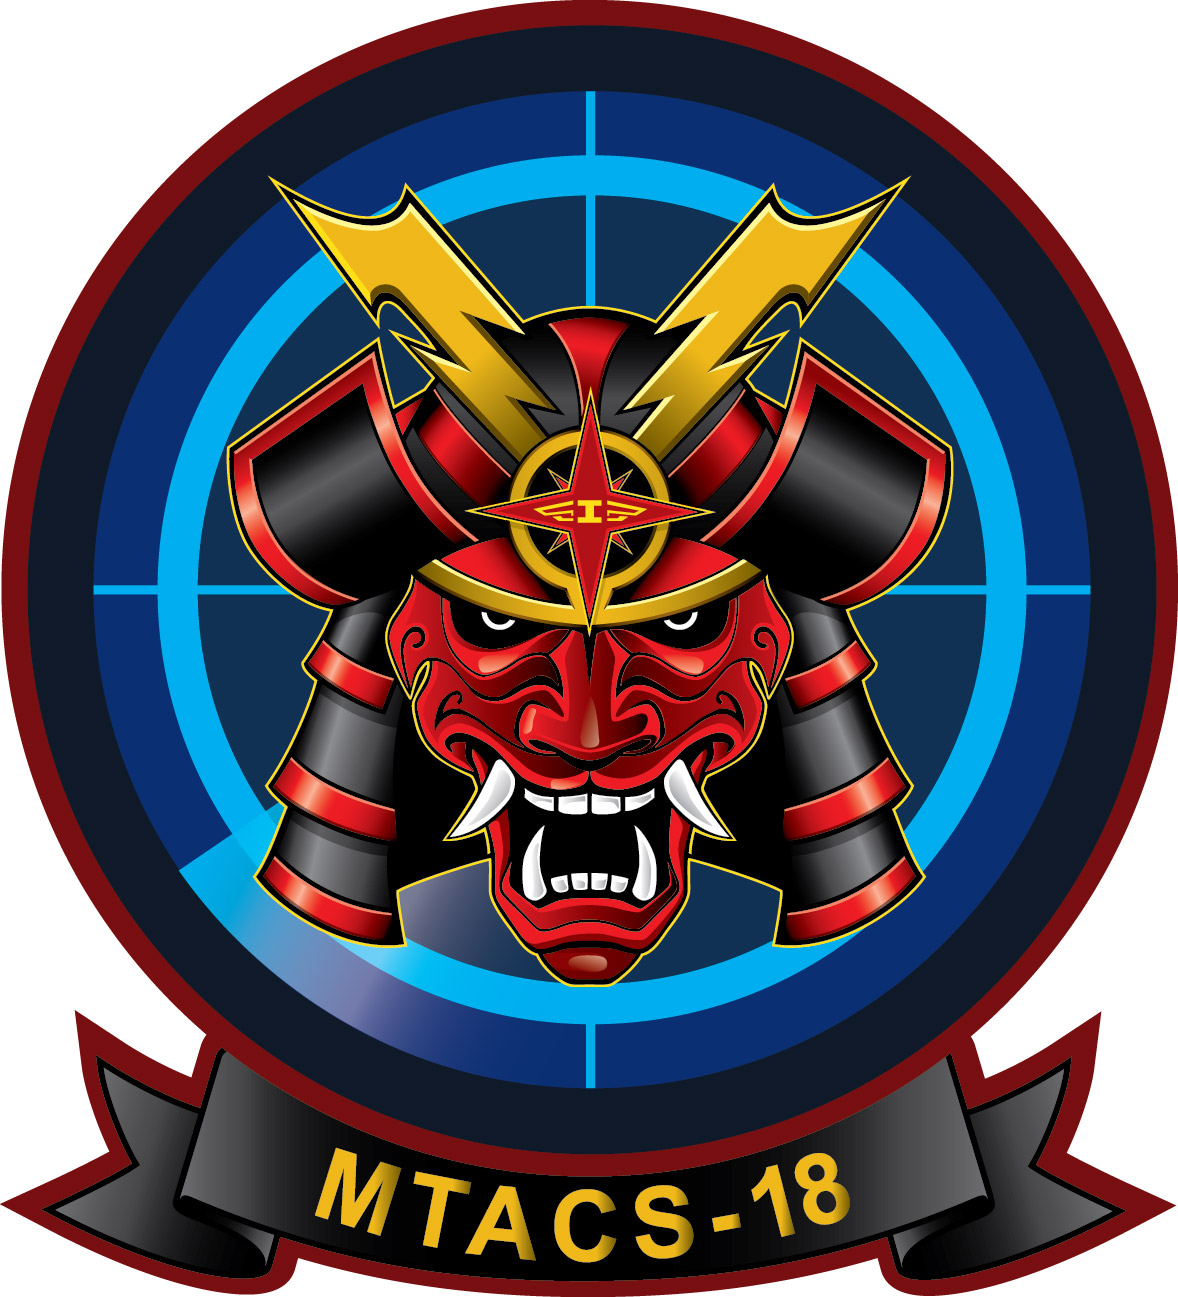 Marine Tactical Air Command Squadron 18 - Wikipedia